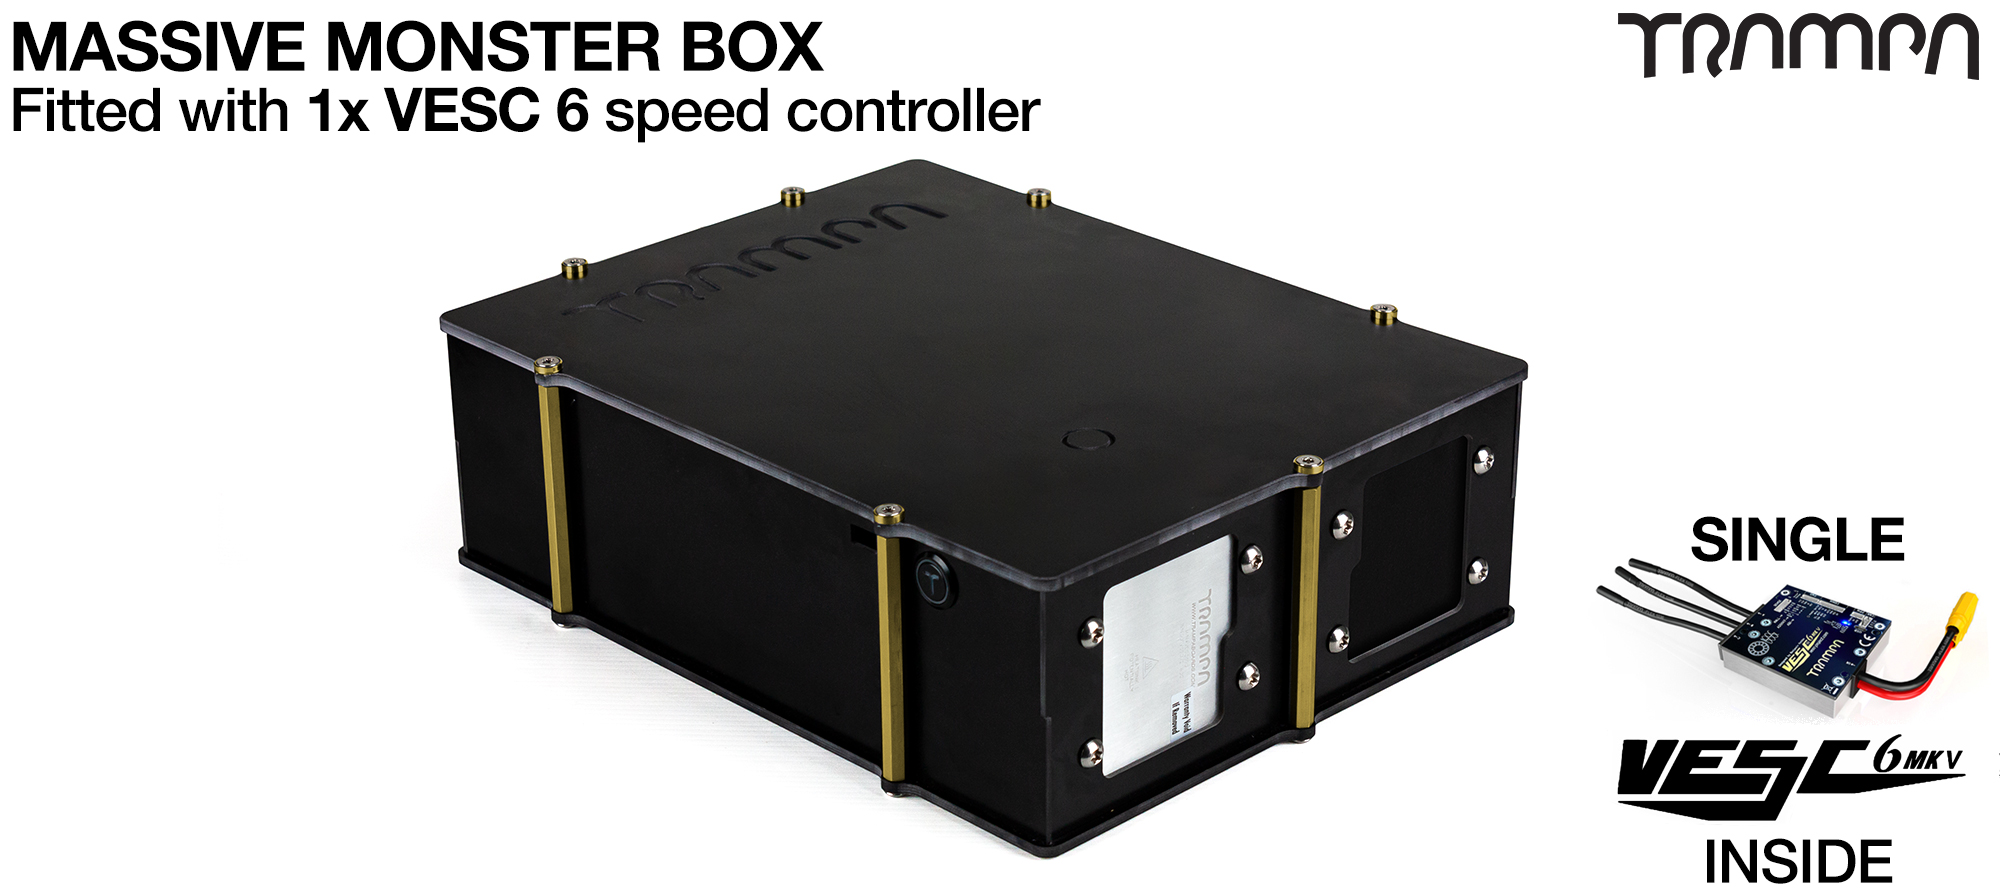 MASSIVE MONSTER Box with 1x VESC 6 & NRF - fits 84x 21700 cells & is Made specifically to work in conjunction with TRAMPA's Electric Decks but can be modified to power many things!